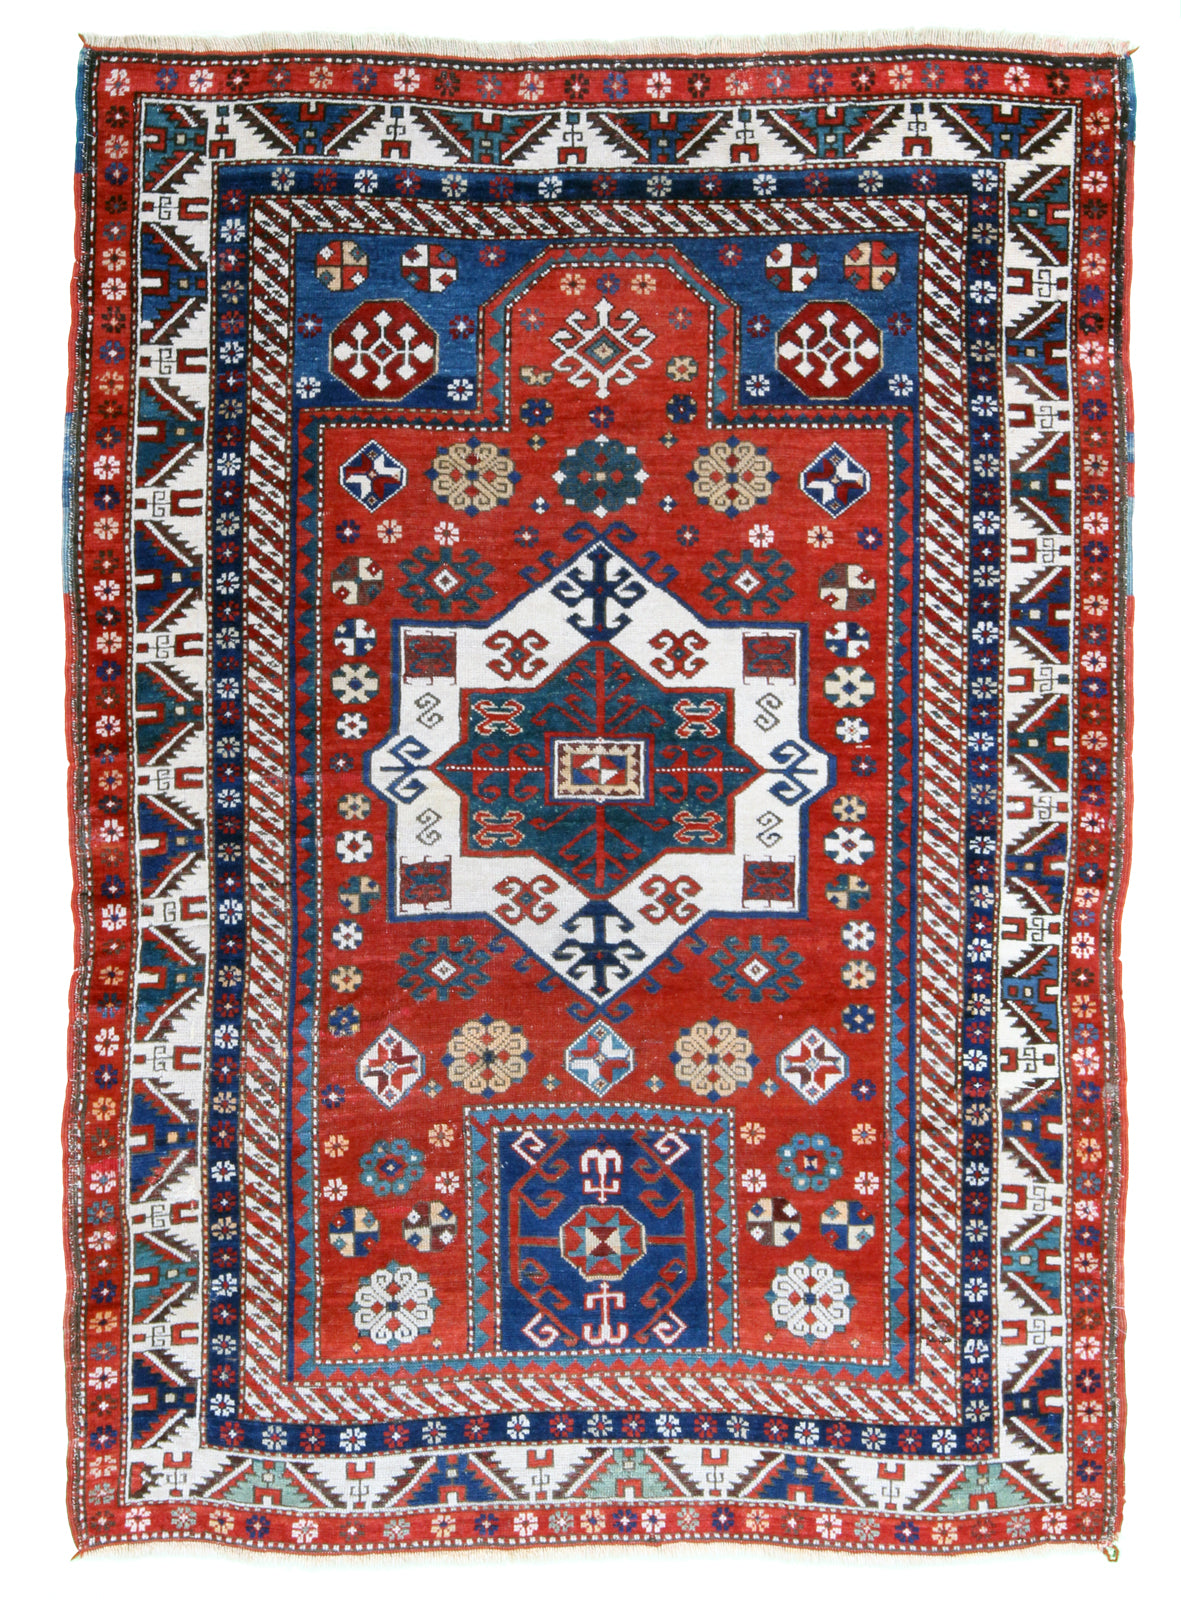 Fachralo Kazak Antique